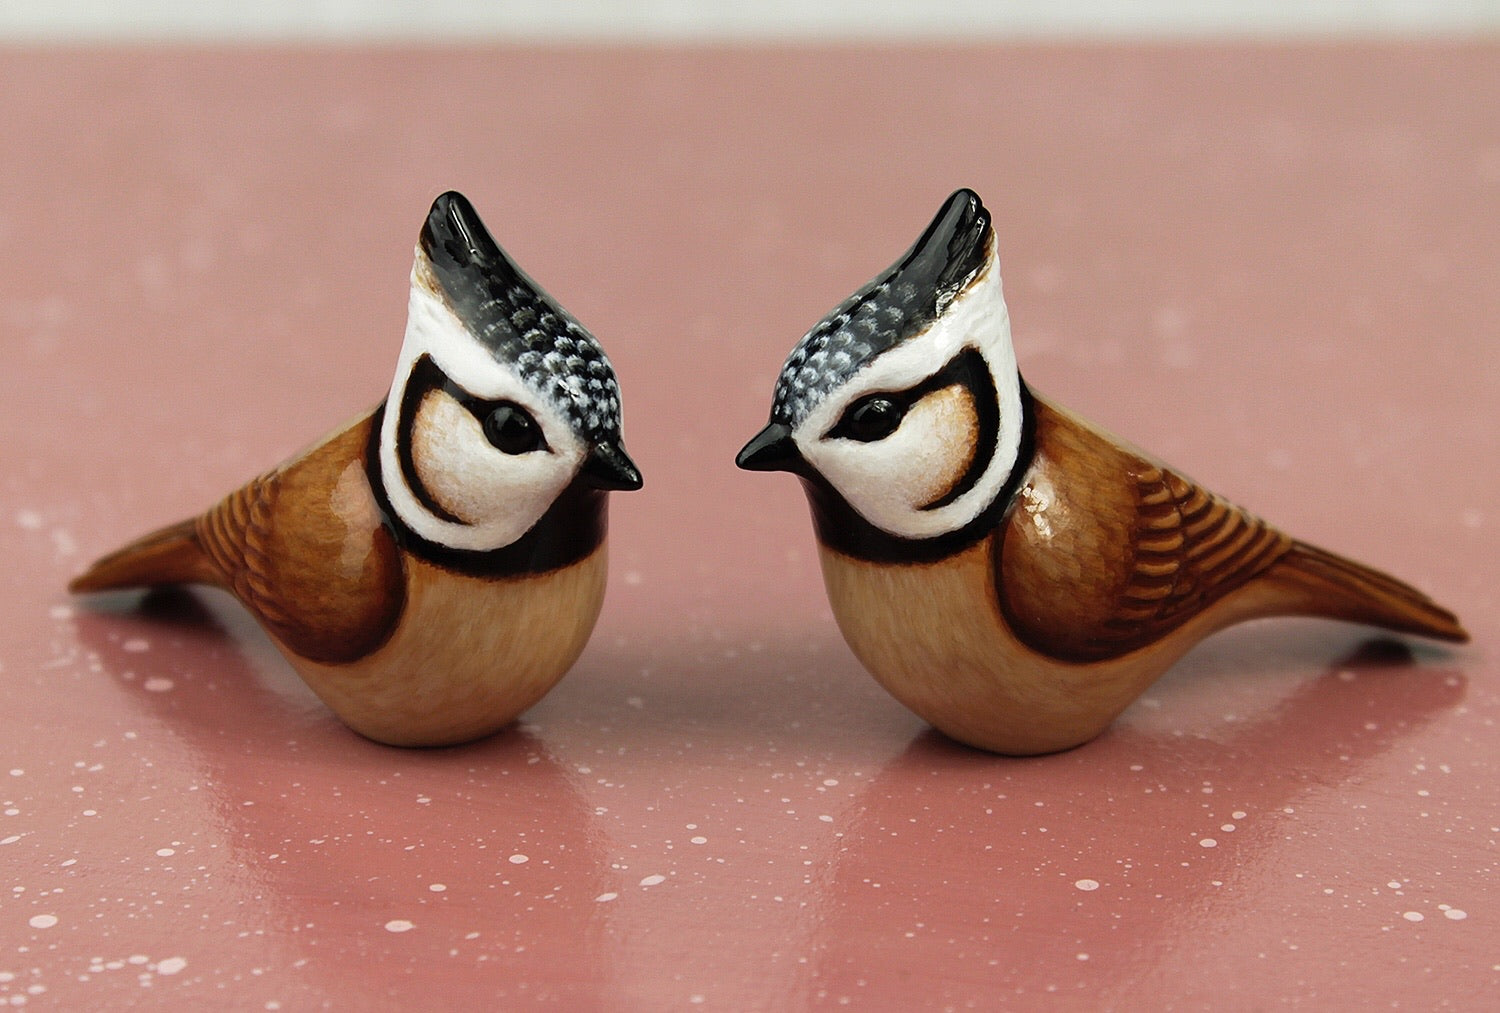 crested tit figurines